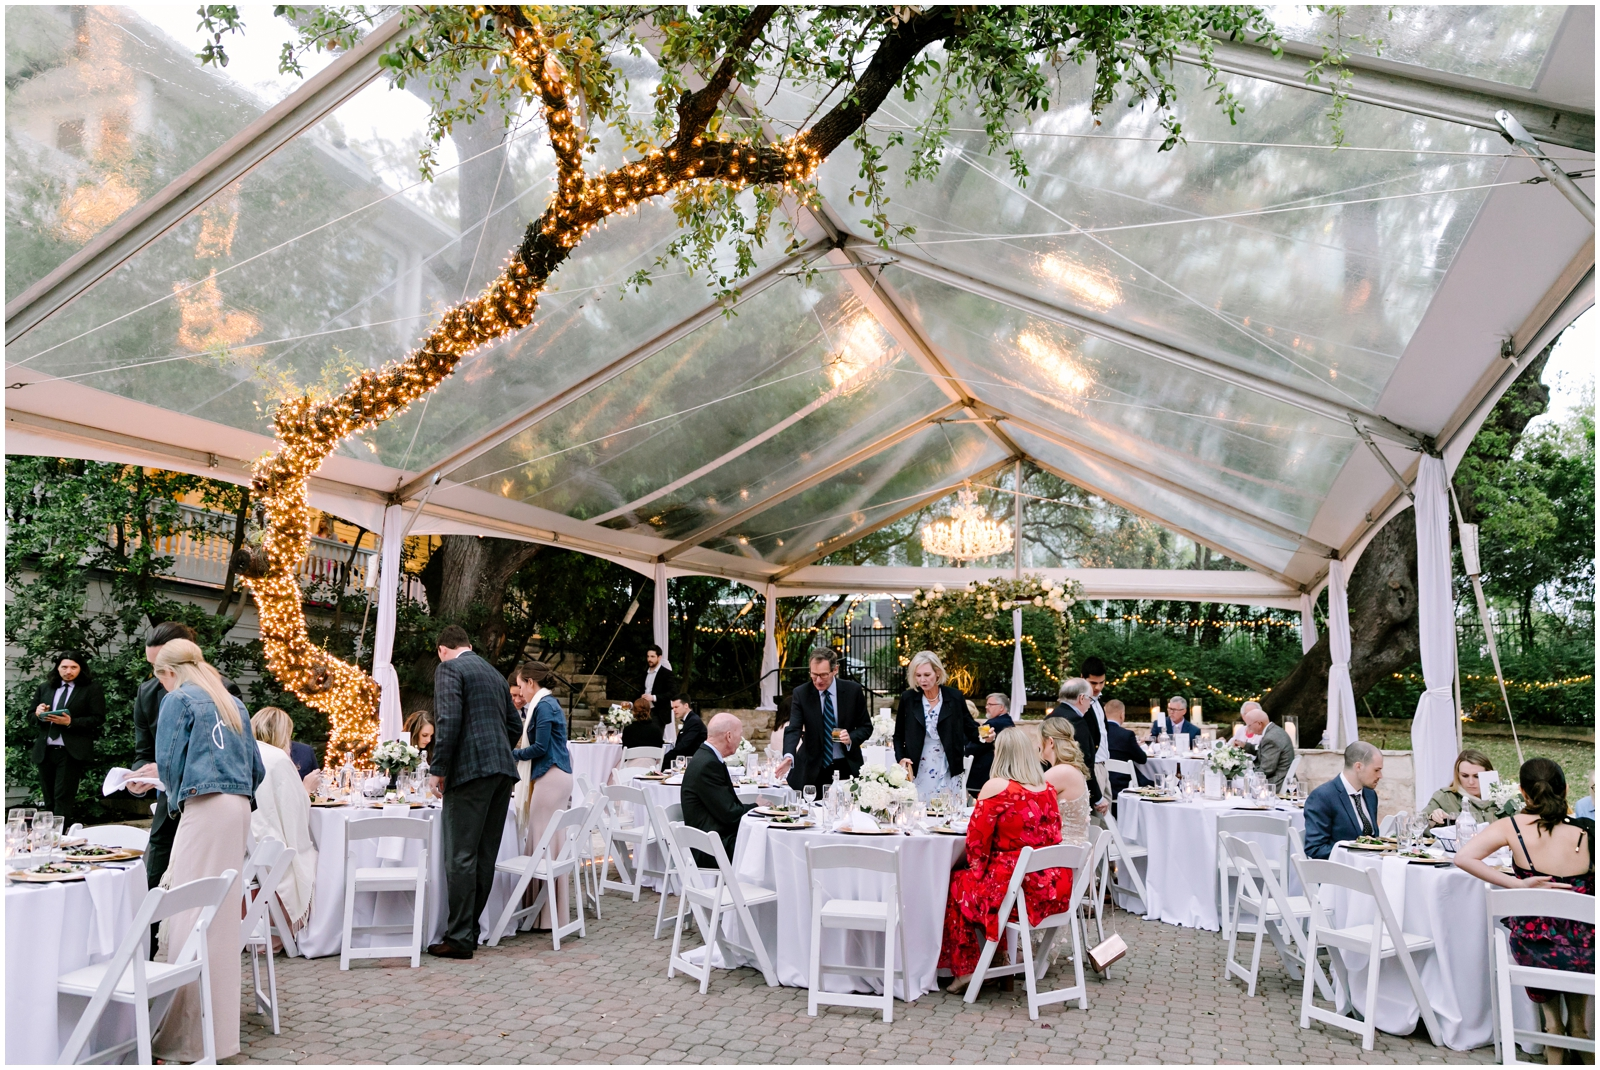 Tented garden wedding reception